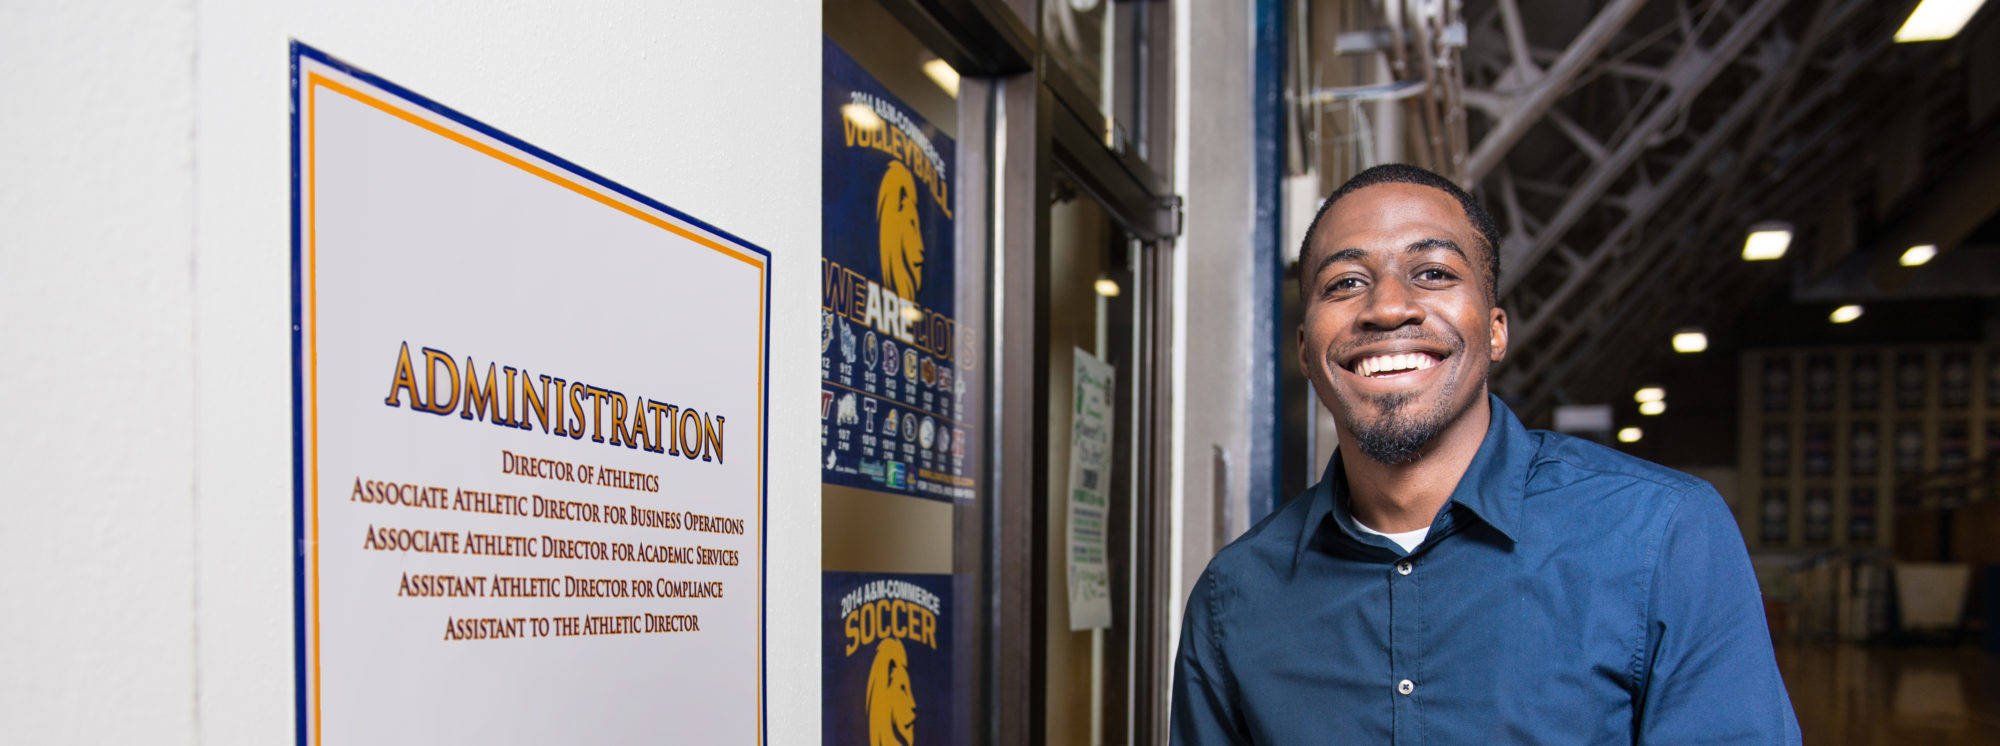 Athletic Administration Student smiling at the camera by the door of the TAMUC Athletics administration department.